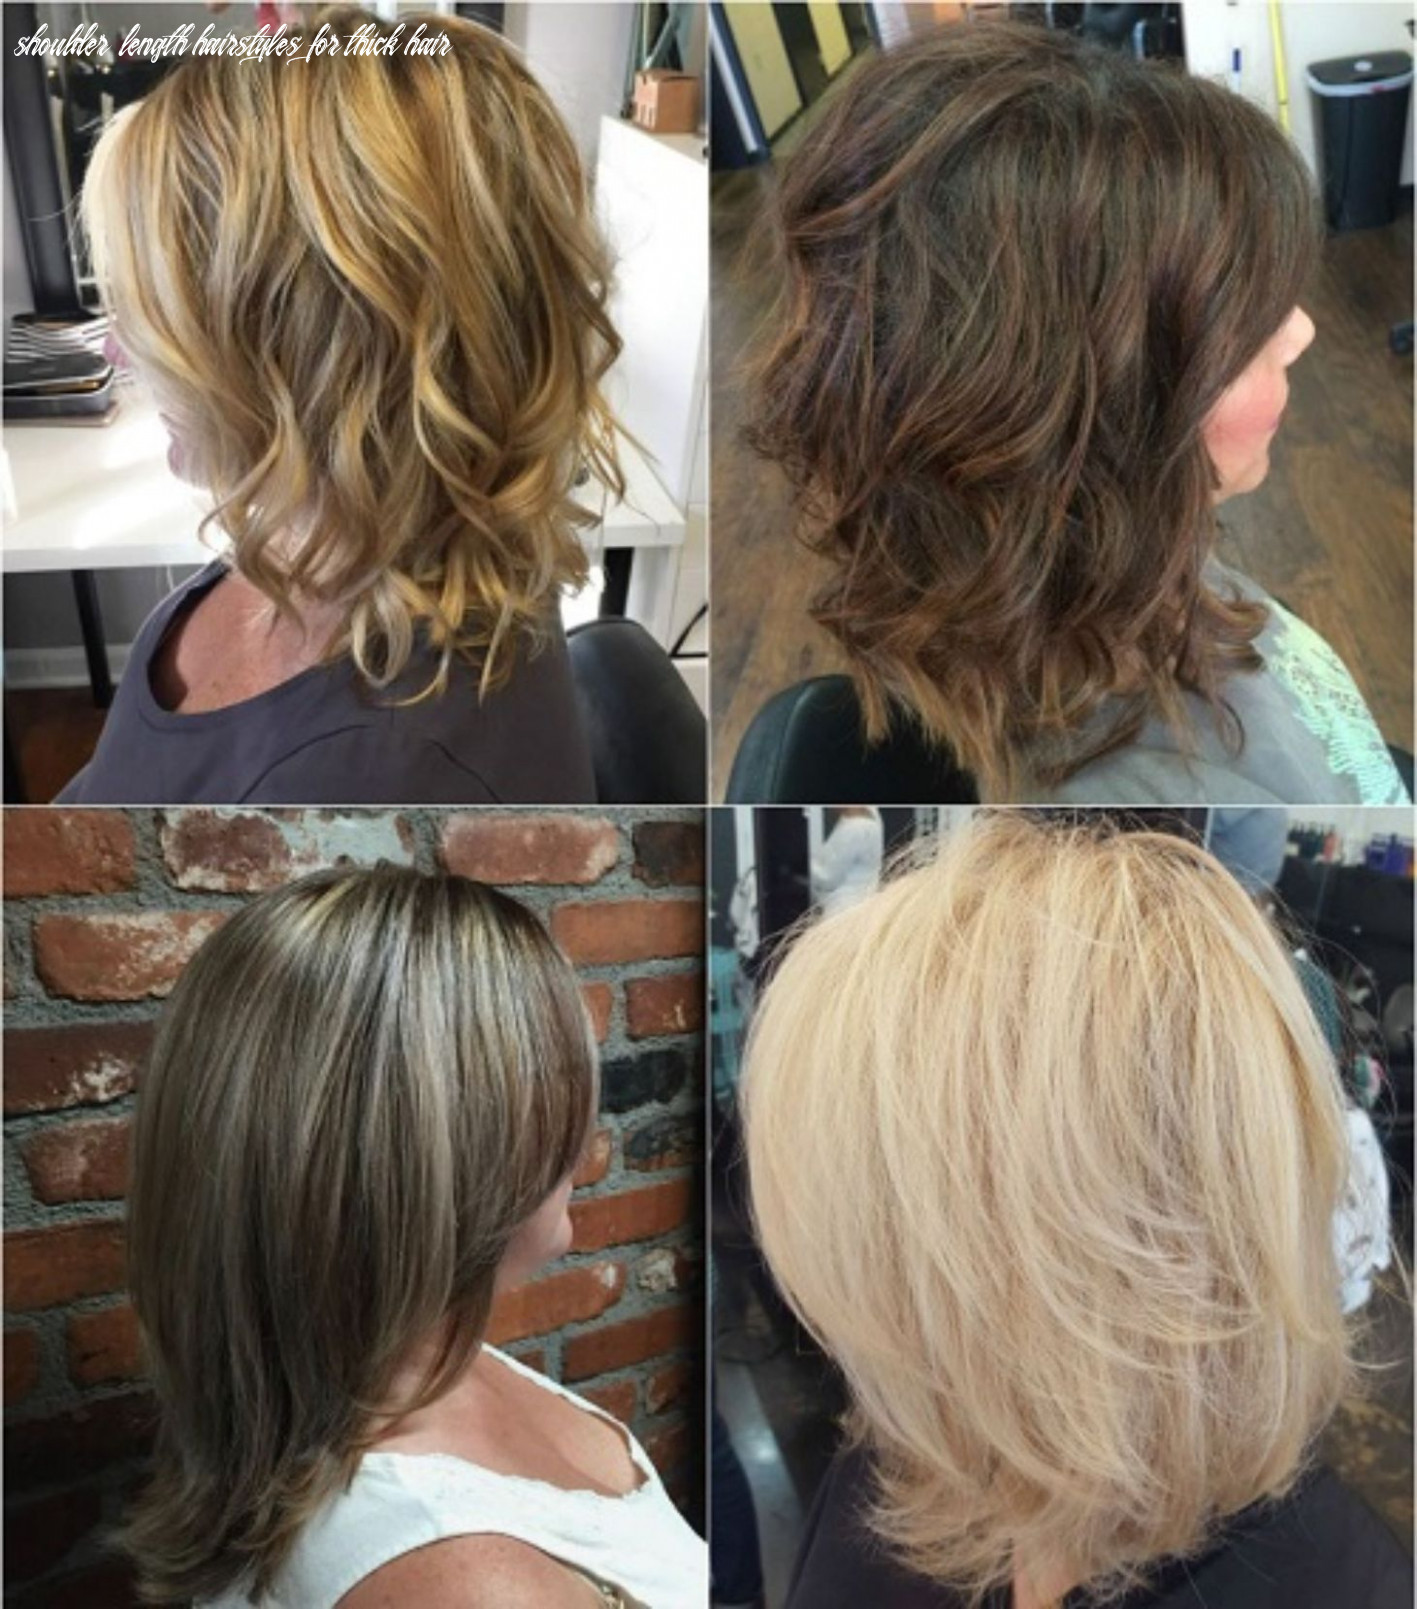 Pin on hairrcuts shoulder length hairstyles for thick hair